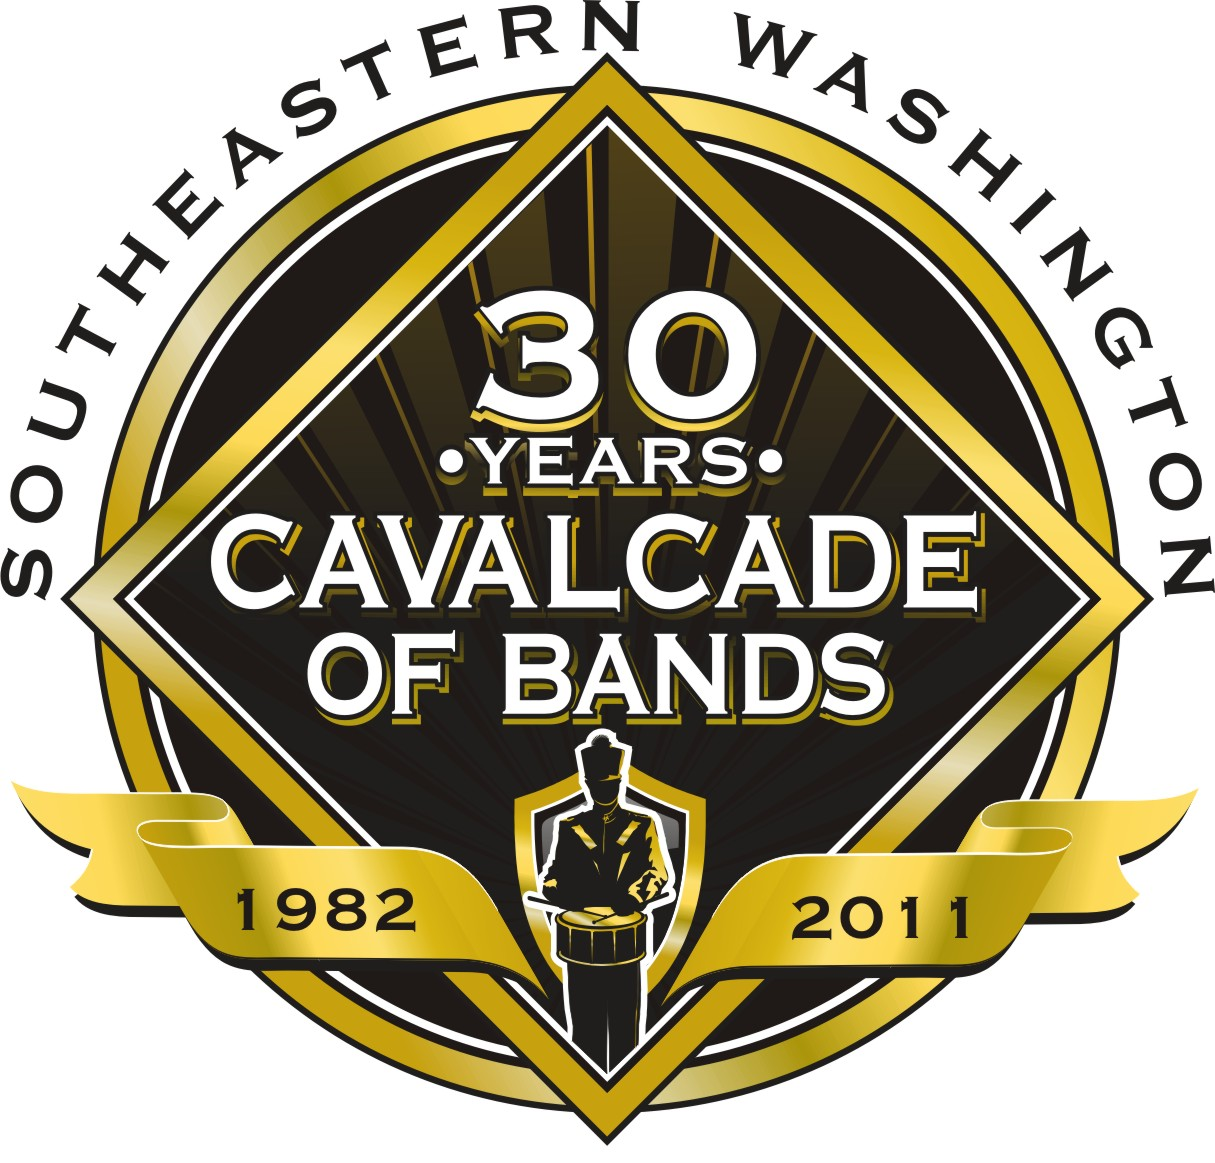 Southeastern Washington Cavalcade of Bands